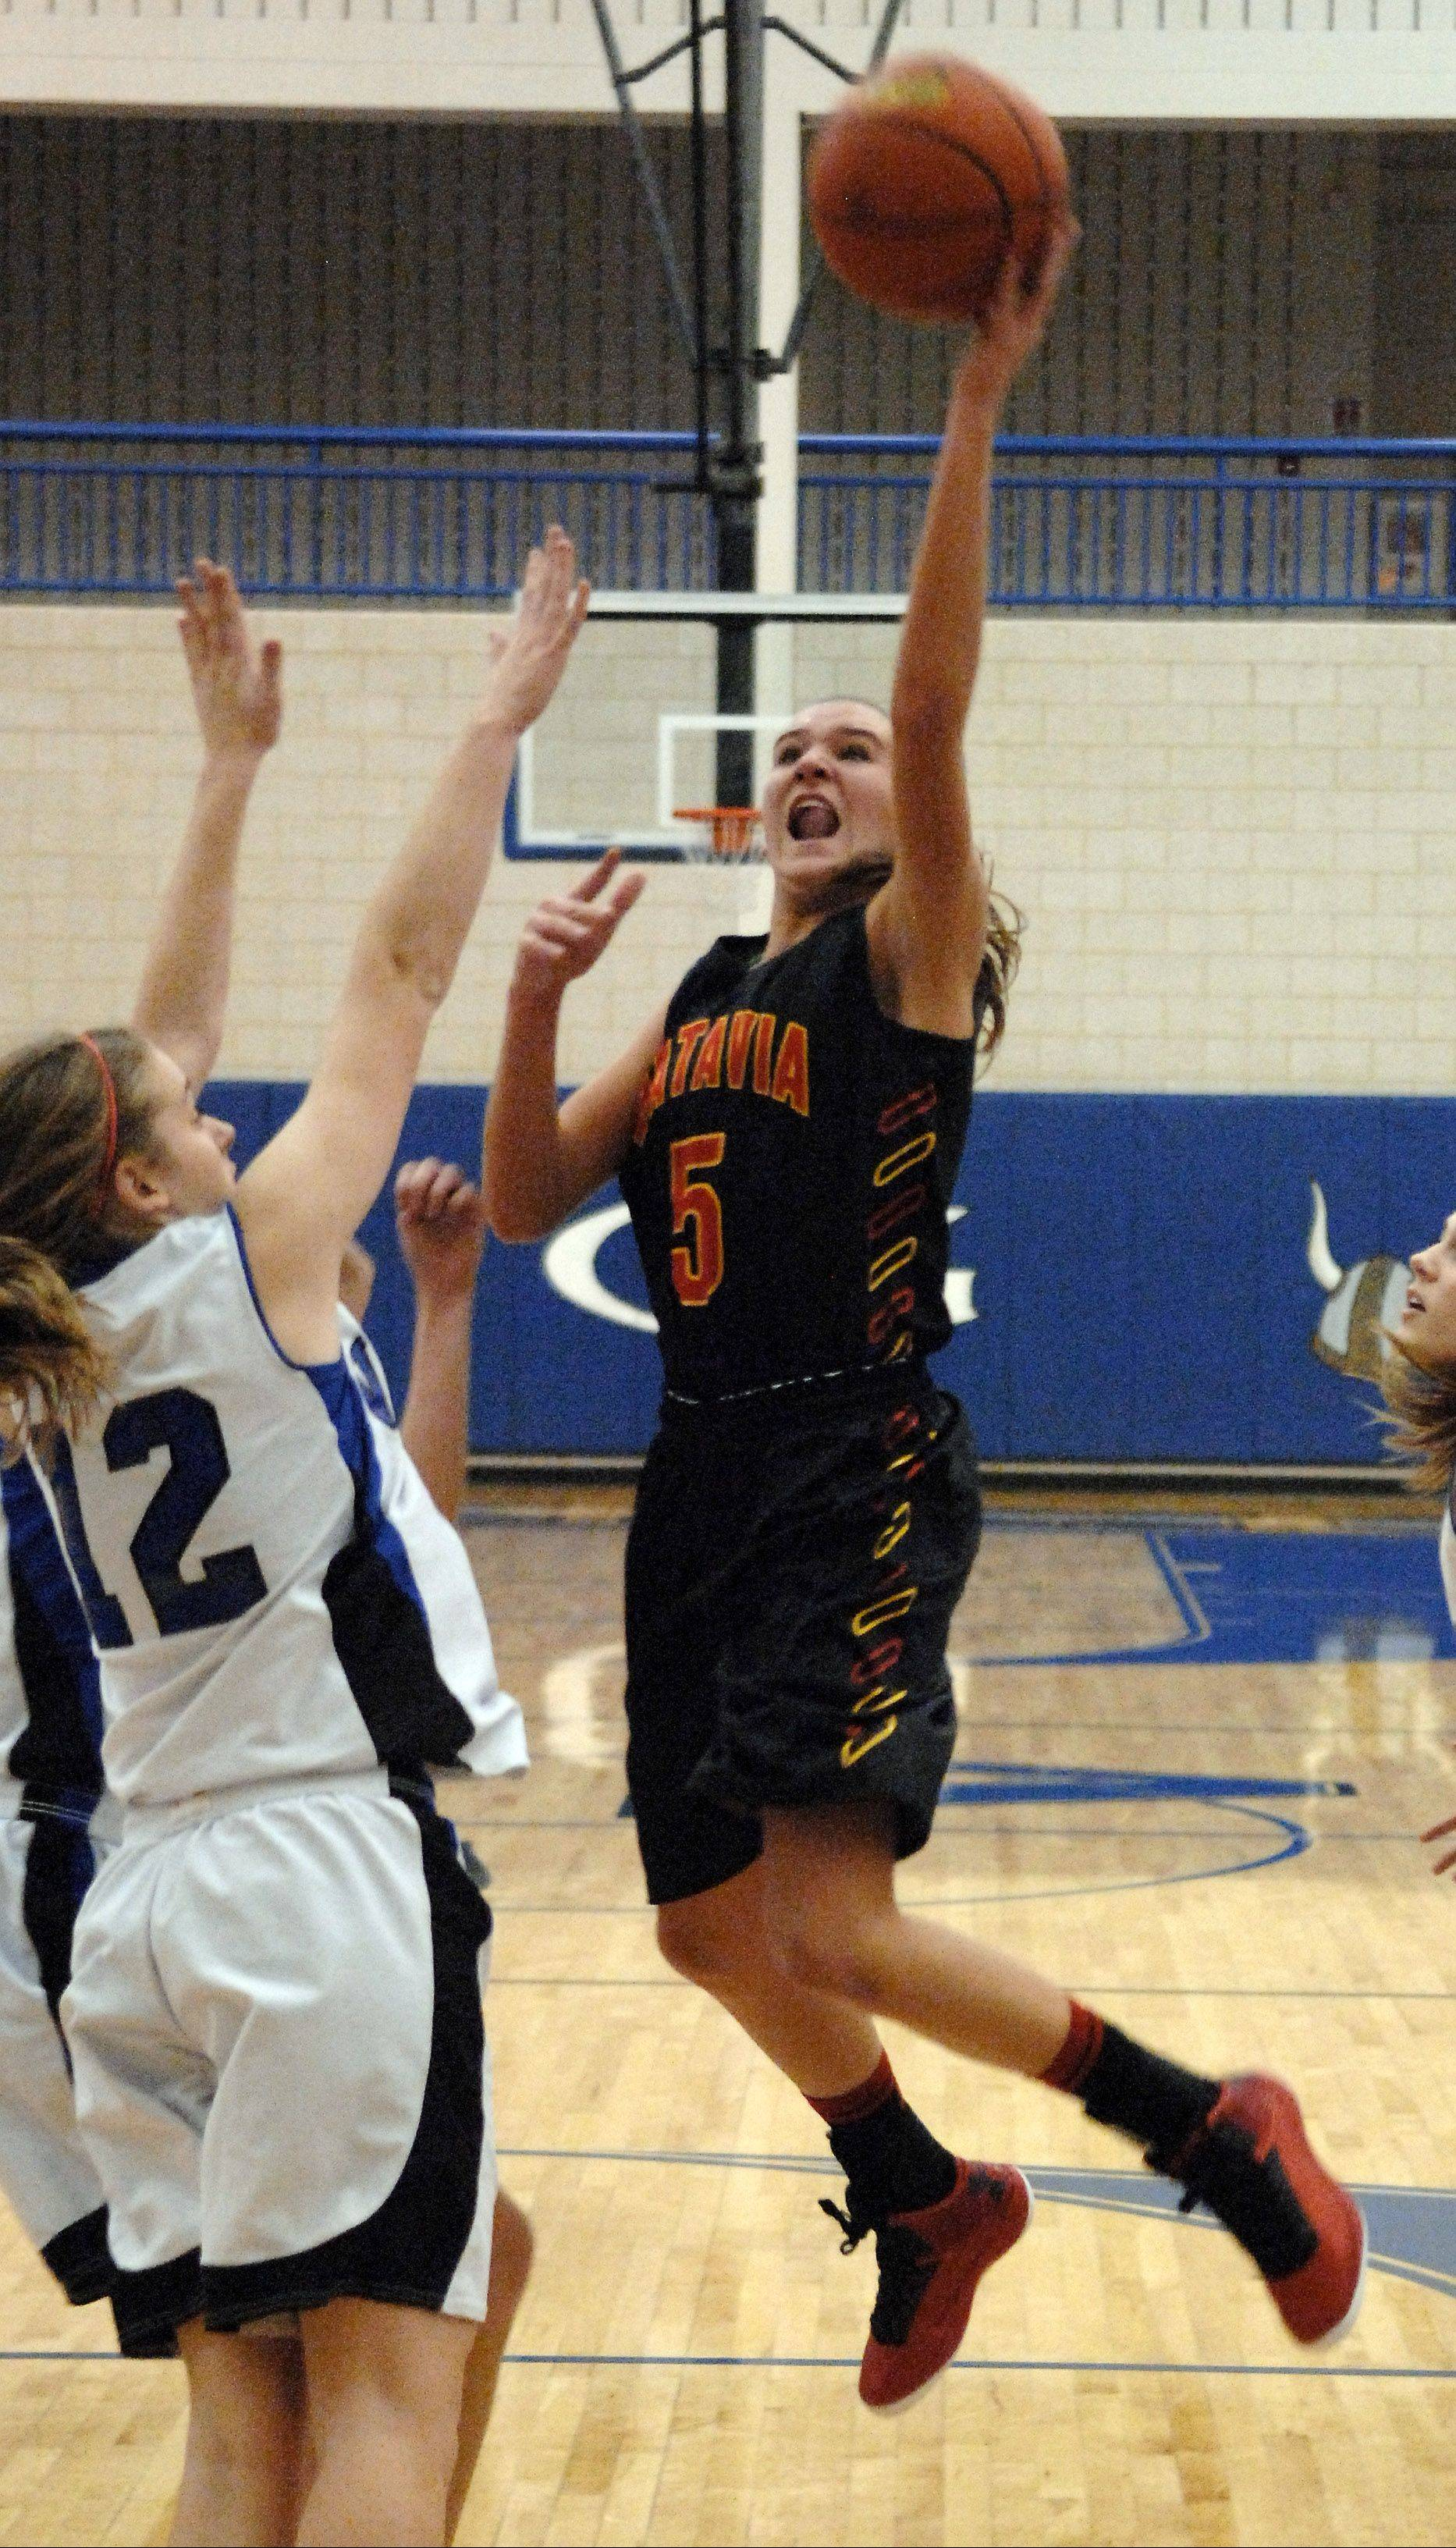 Batavia's Liza Fruendt drives to the basket against Geneva during Friday's game at Geneva.